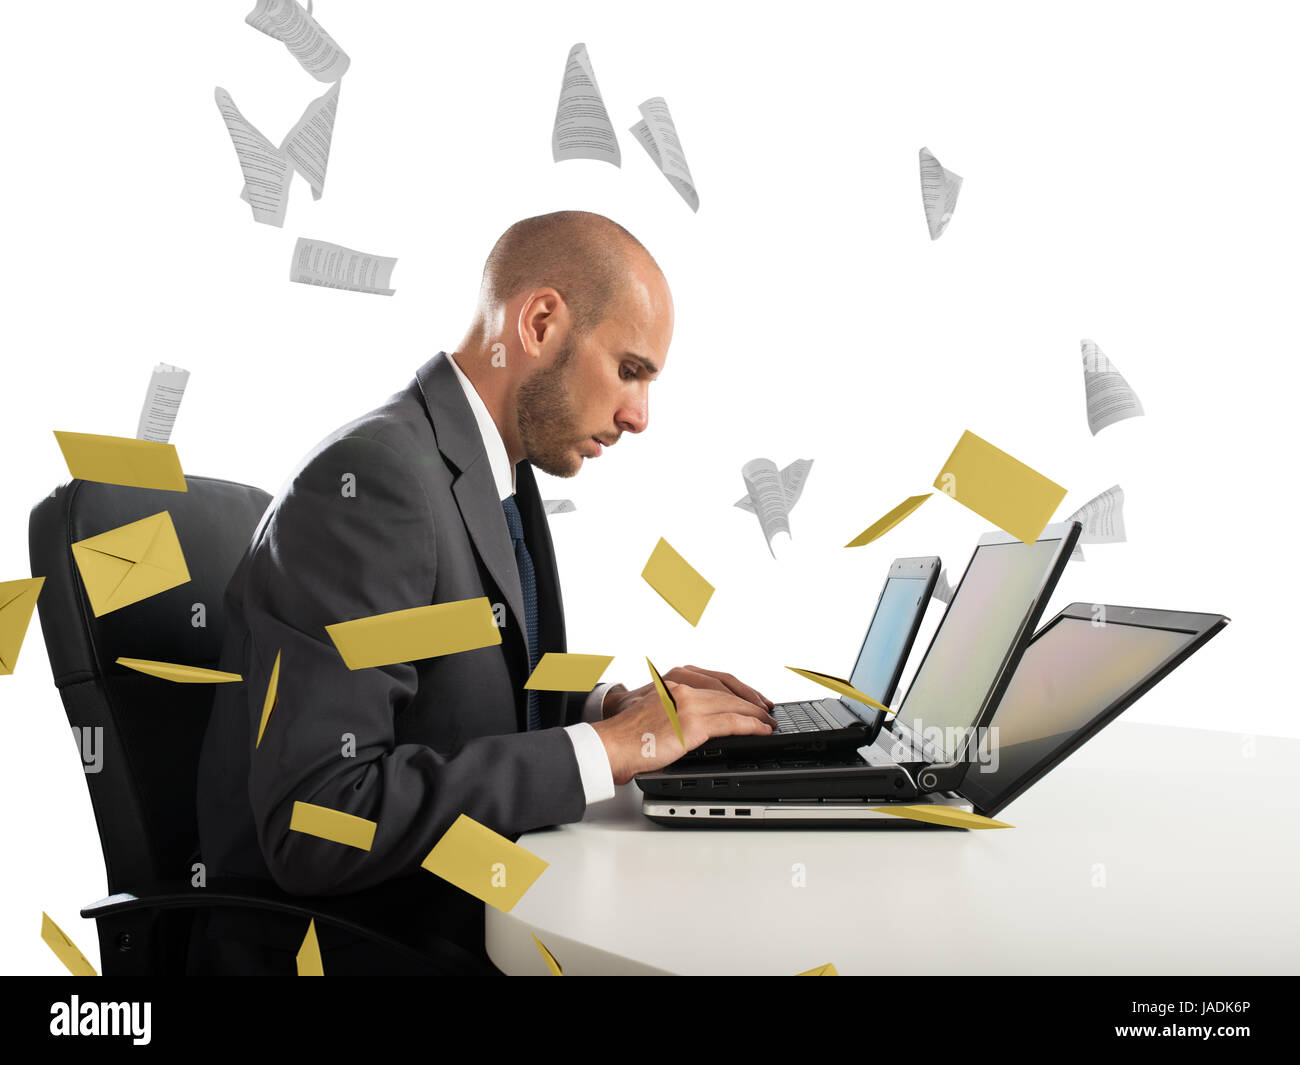 Despair and stress for spam e-mail - Stock Image